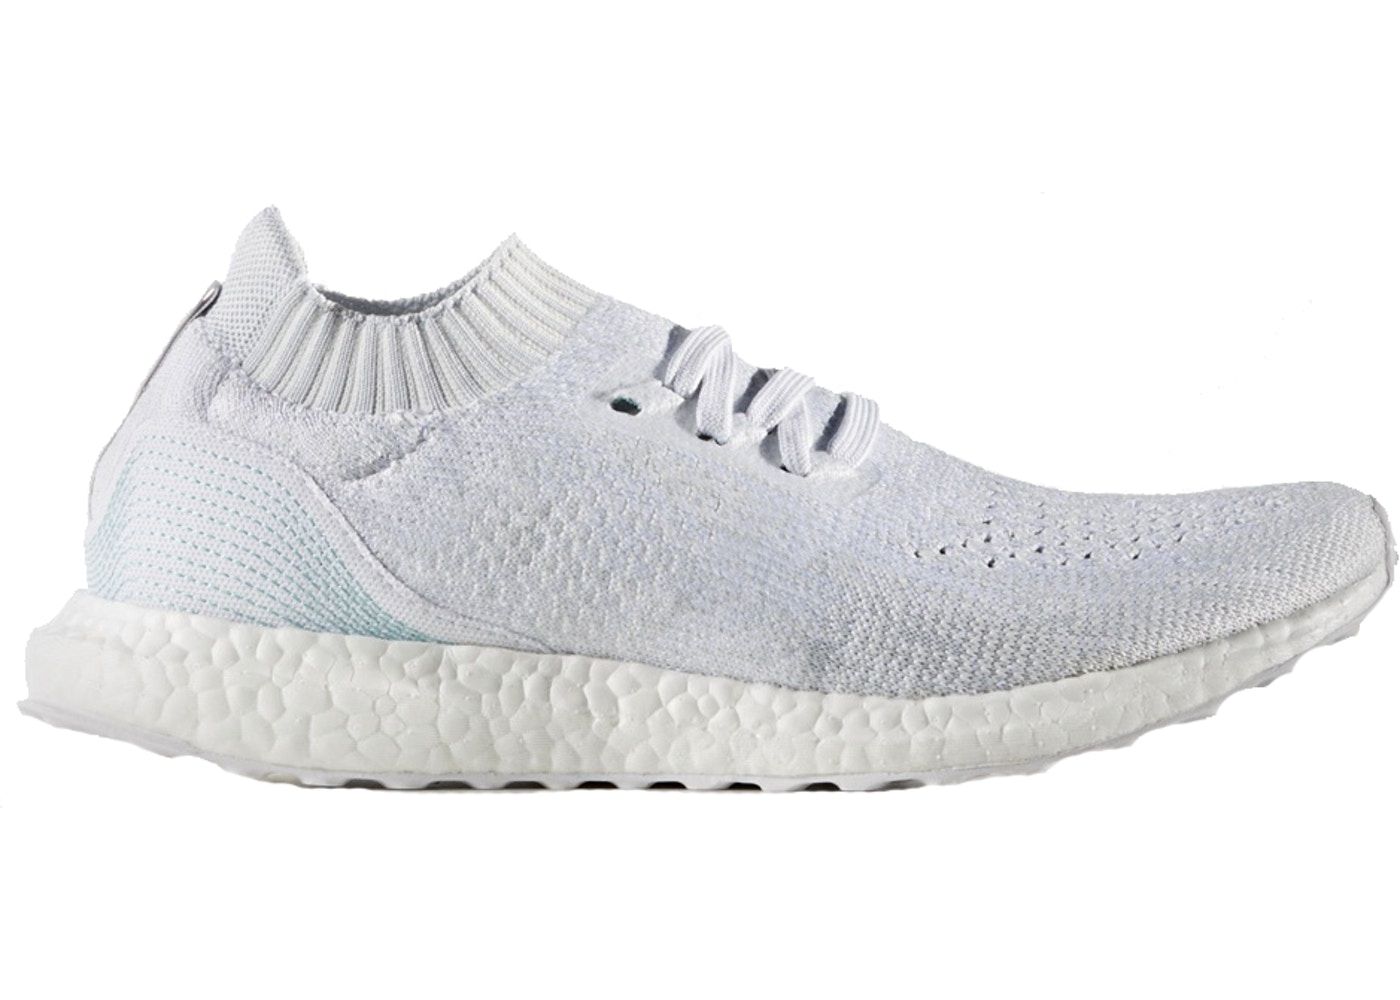 4d9c0199a84d9 adidas Ultra Boost Uncaged Parley - BB4073